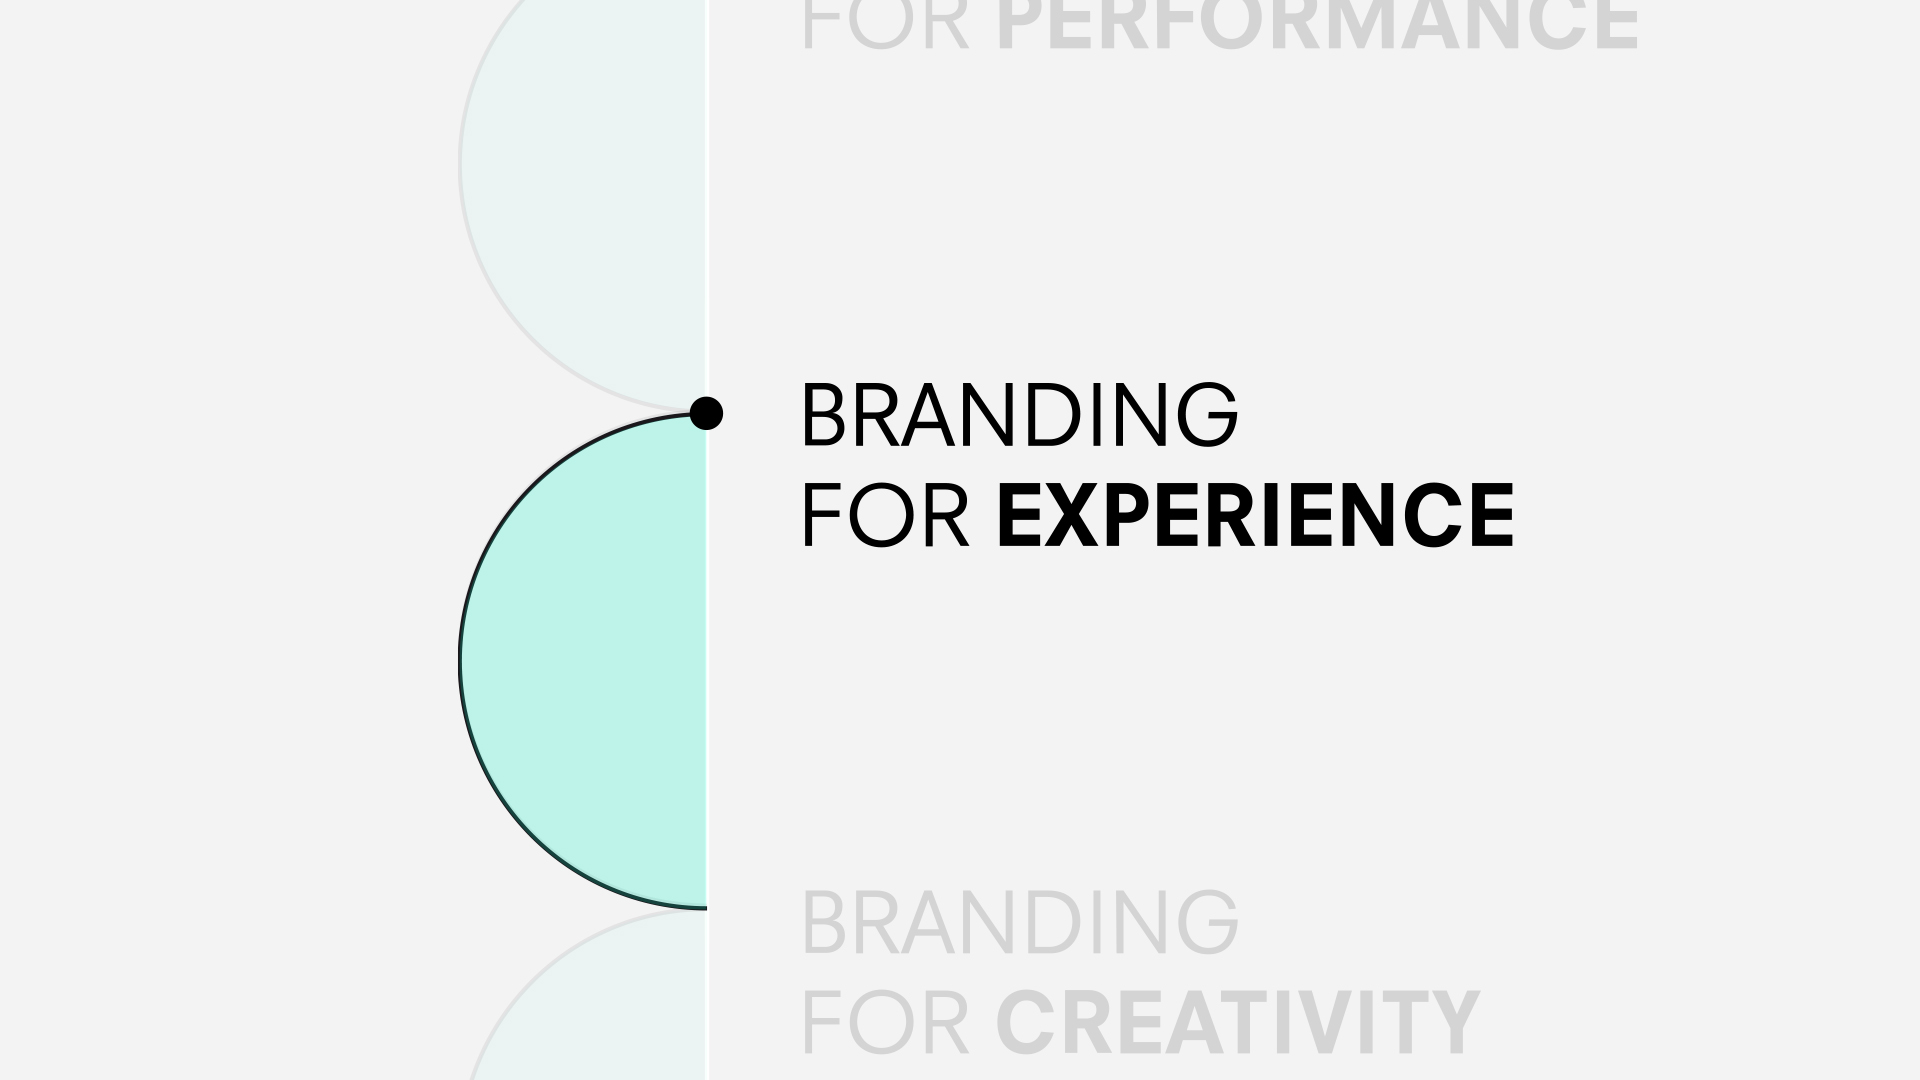 Branding for experience